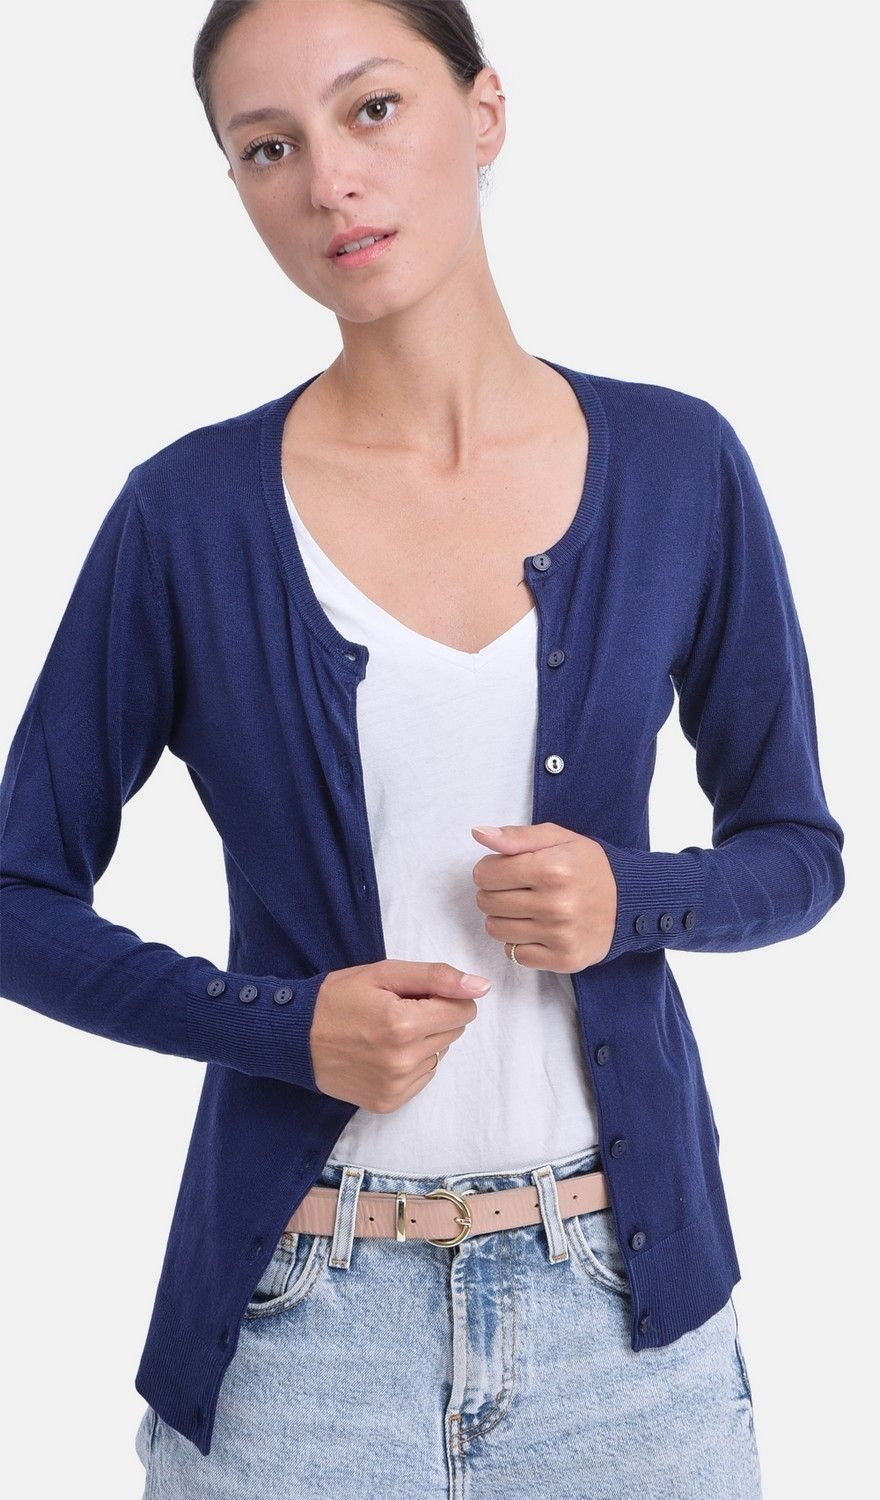 C&JO Round Neck Cardigan with Buttoned Sleeves in Navy